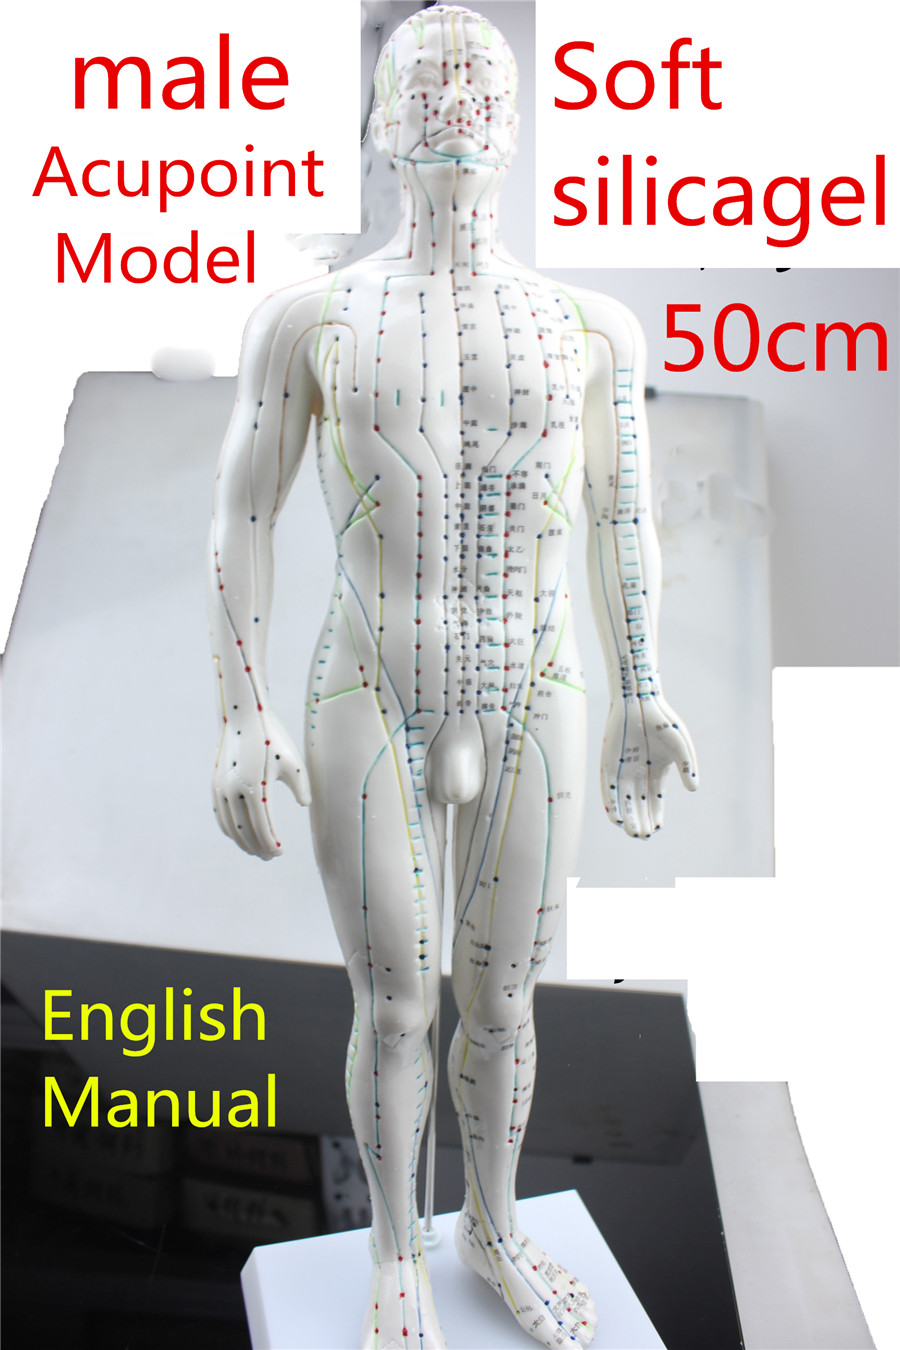 HD Soft silicagel Acupuncture Model 50cm male with Base Human acupuncture meridians model Acupoint Model Acupuncture massage